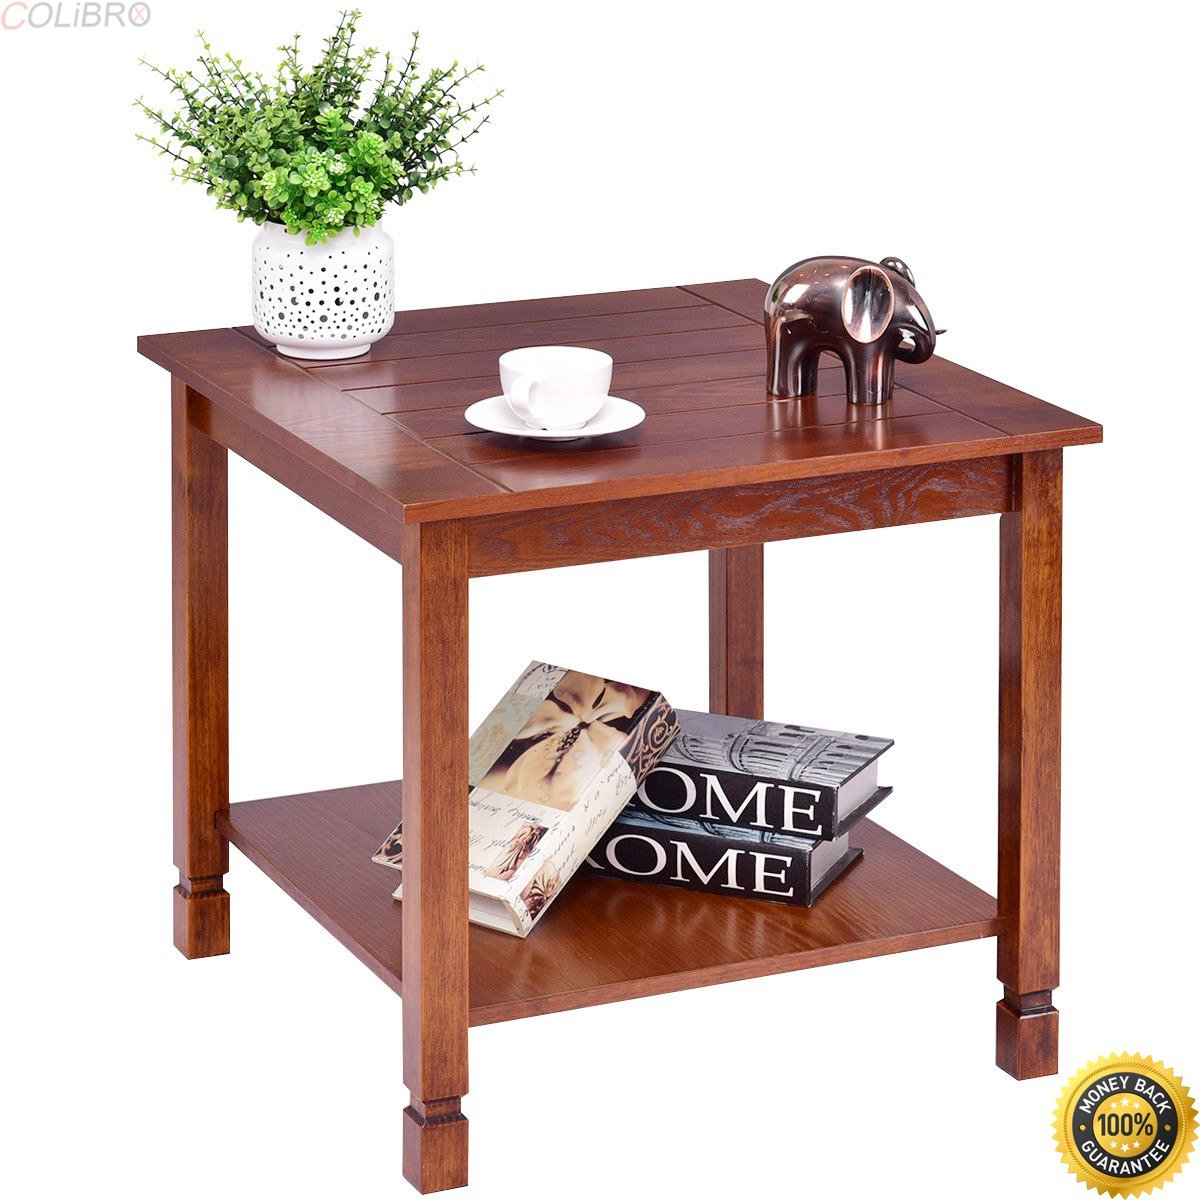 COLIBROX--Wood Side Table End Table Night Stand Coffee Table with Storage Shelf Walnut,contemporary nightstands bedroom,nightstands clearance,attractive and practical side table